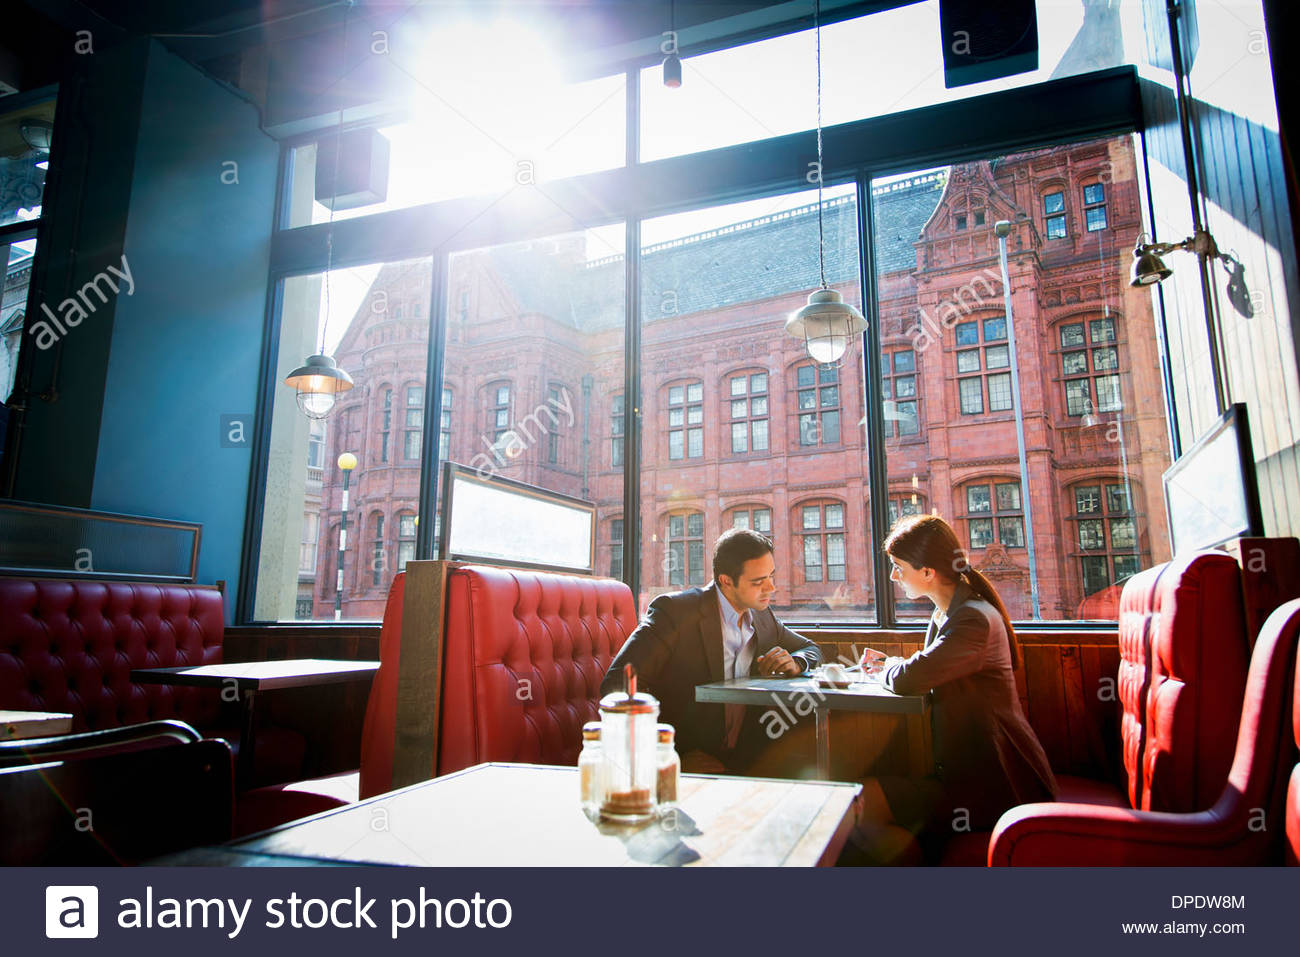 Couple sitting in restaurant booth - Stock Image